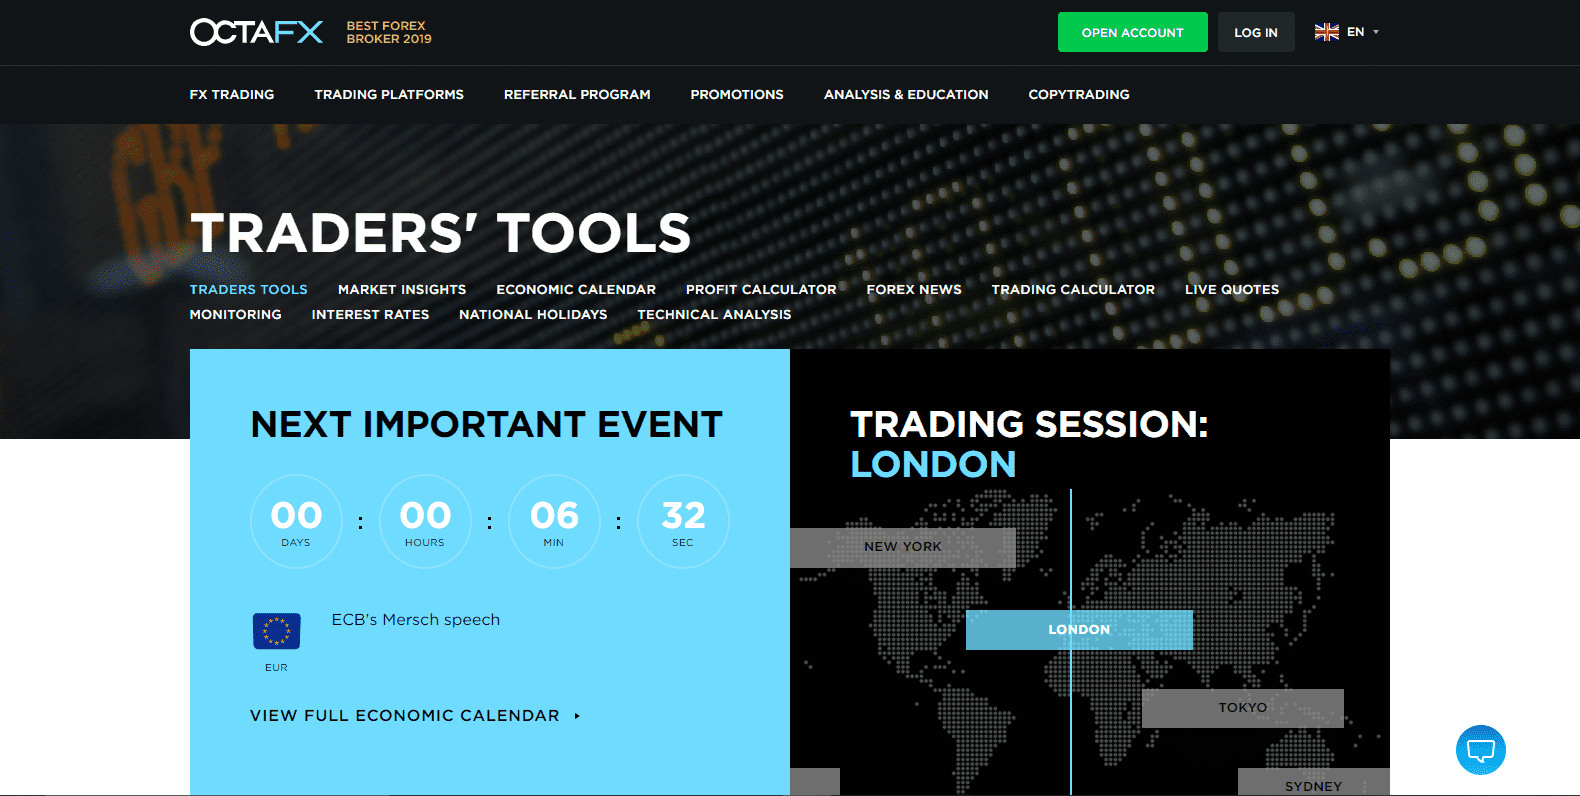 OctaFX Review traders tools